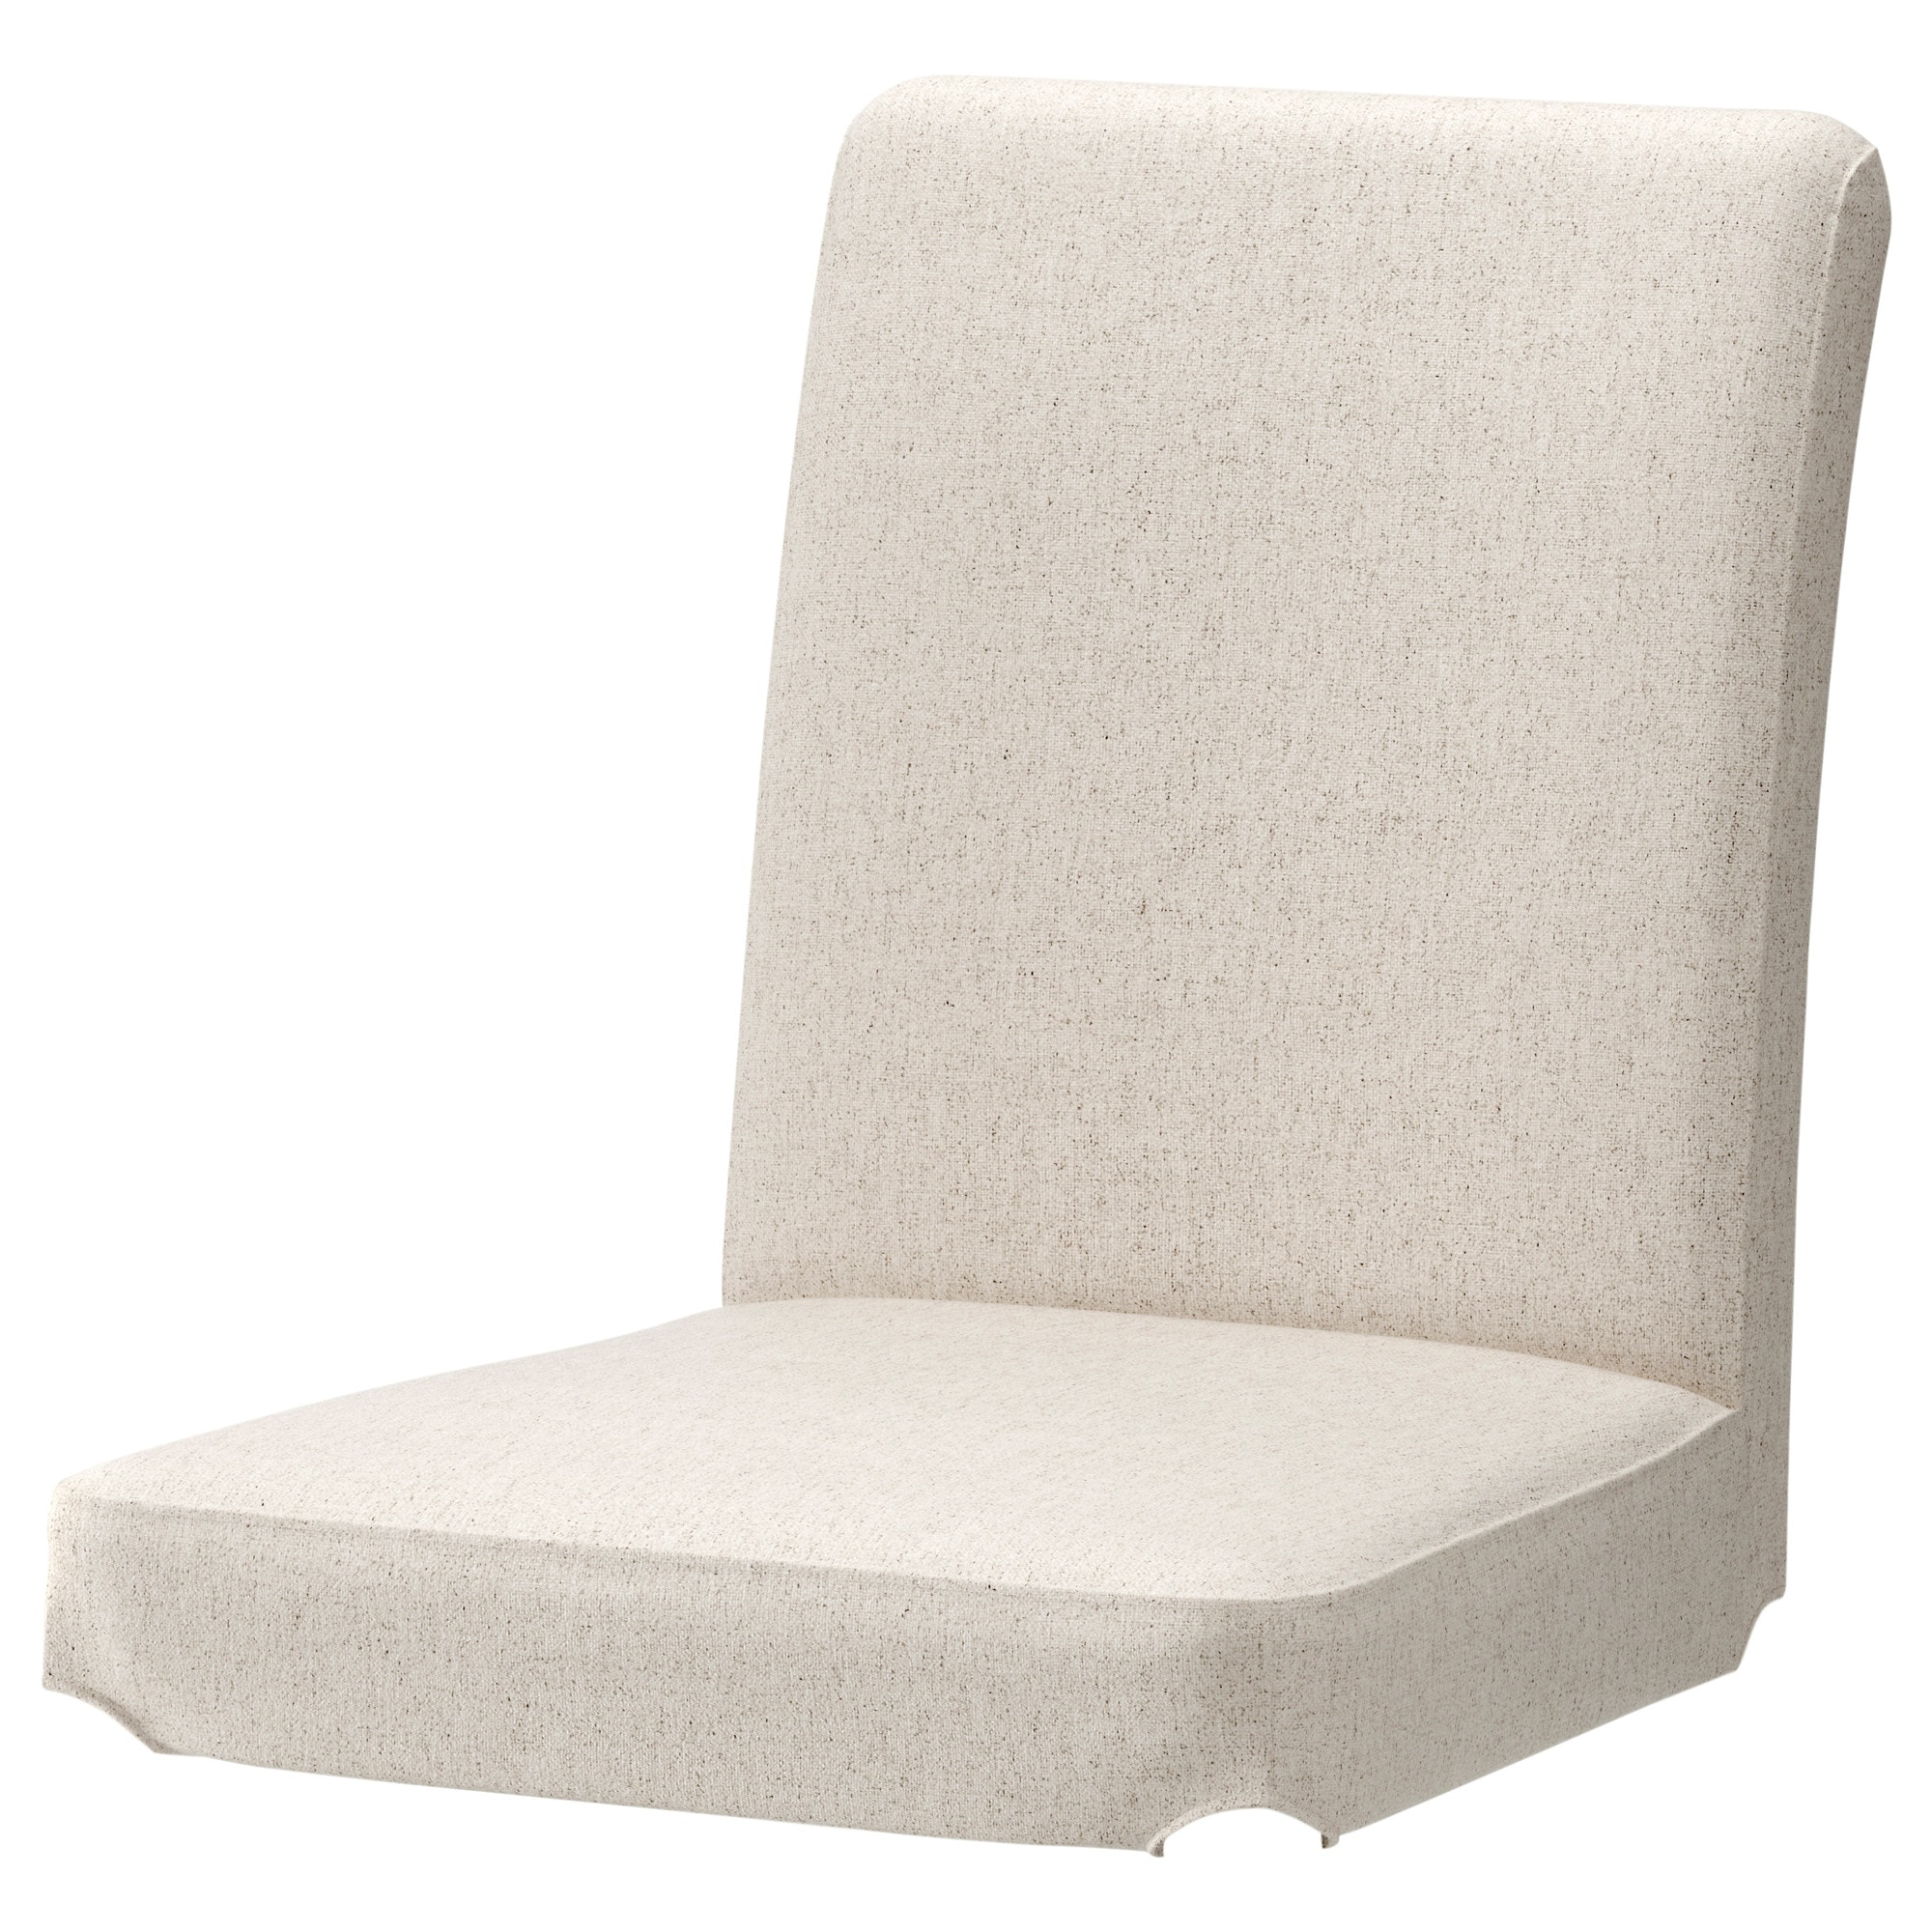 henriksdal chair cover - ikea